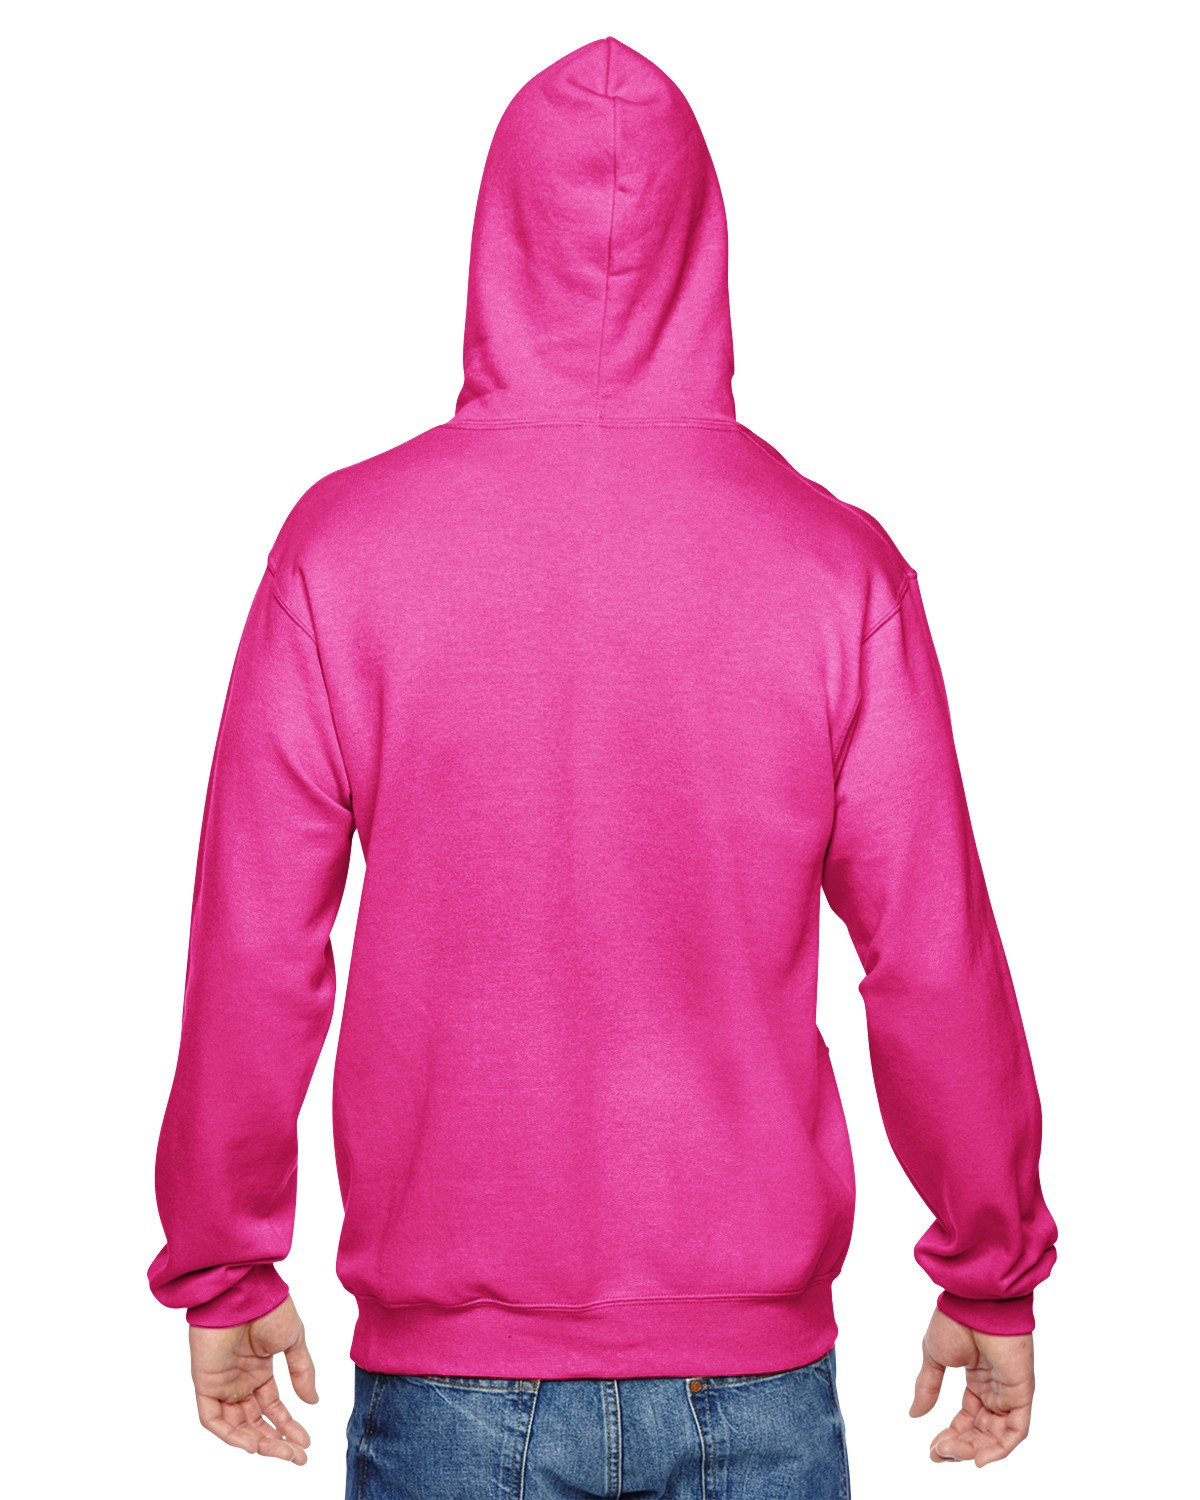 SF76R Fruit of the Loom CYBER PINK